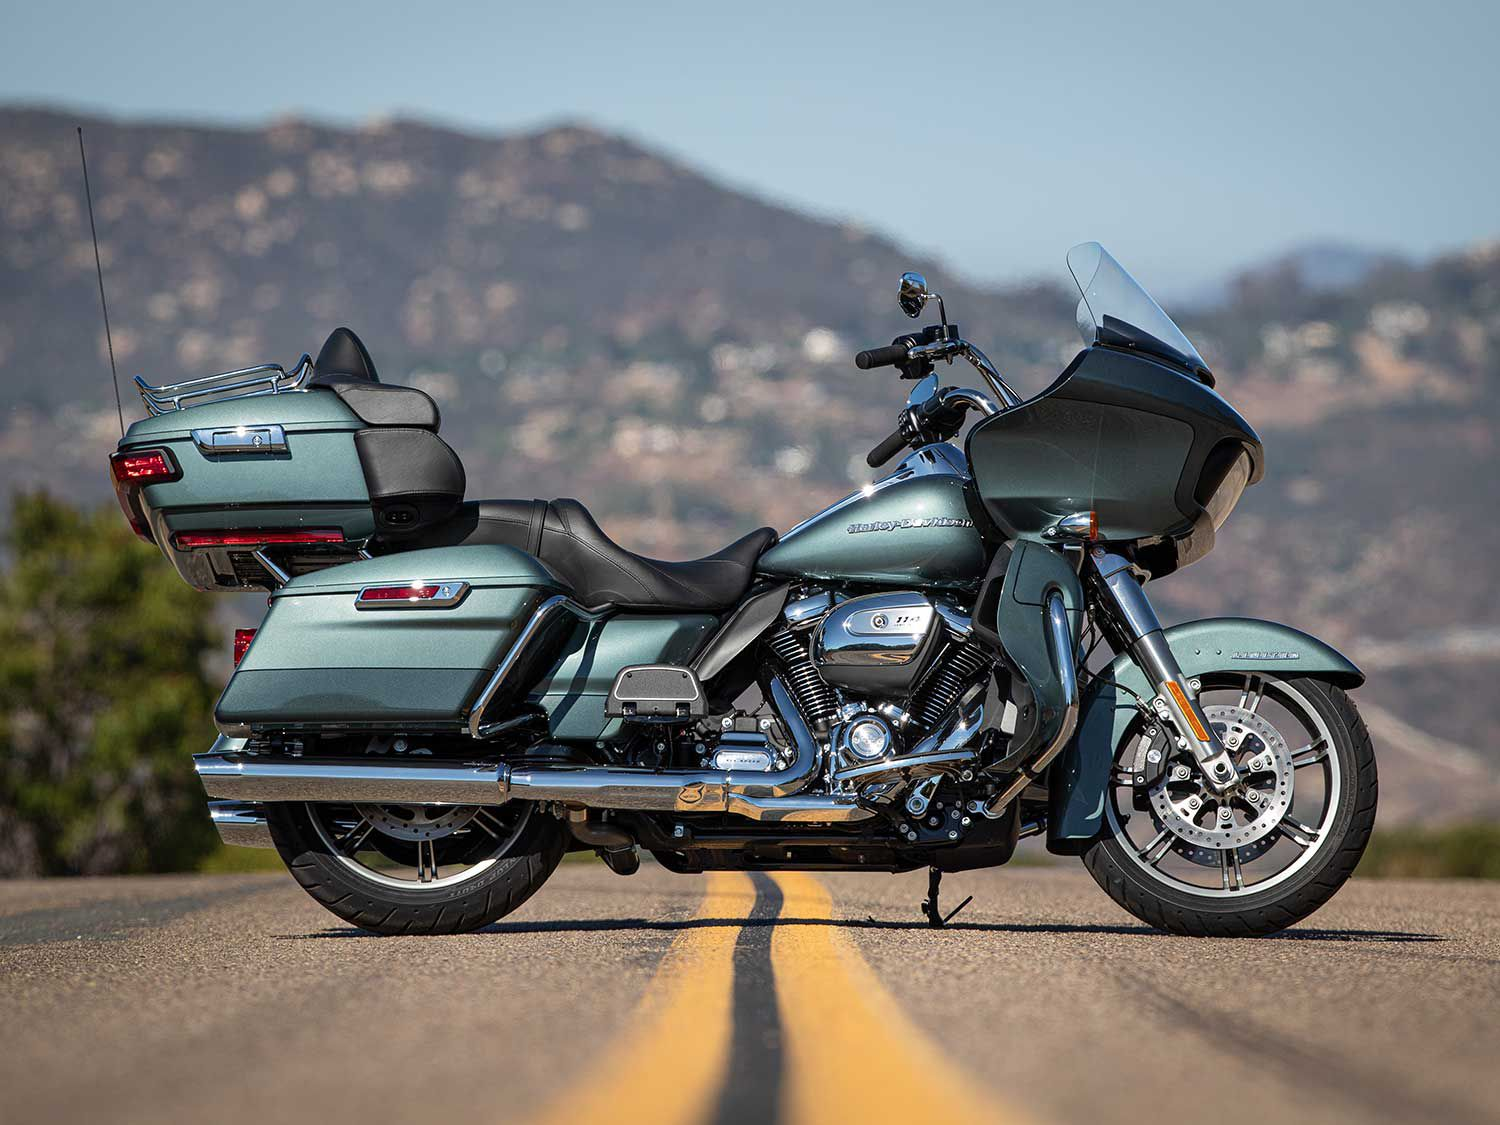 2020 Harley-Davidson Road Glide Limited in two-tone Silver Pine and Spruce.